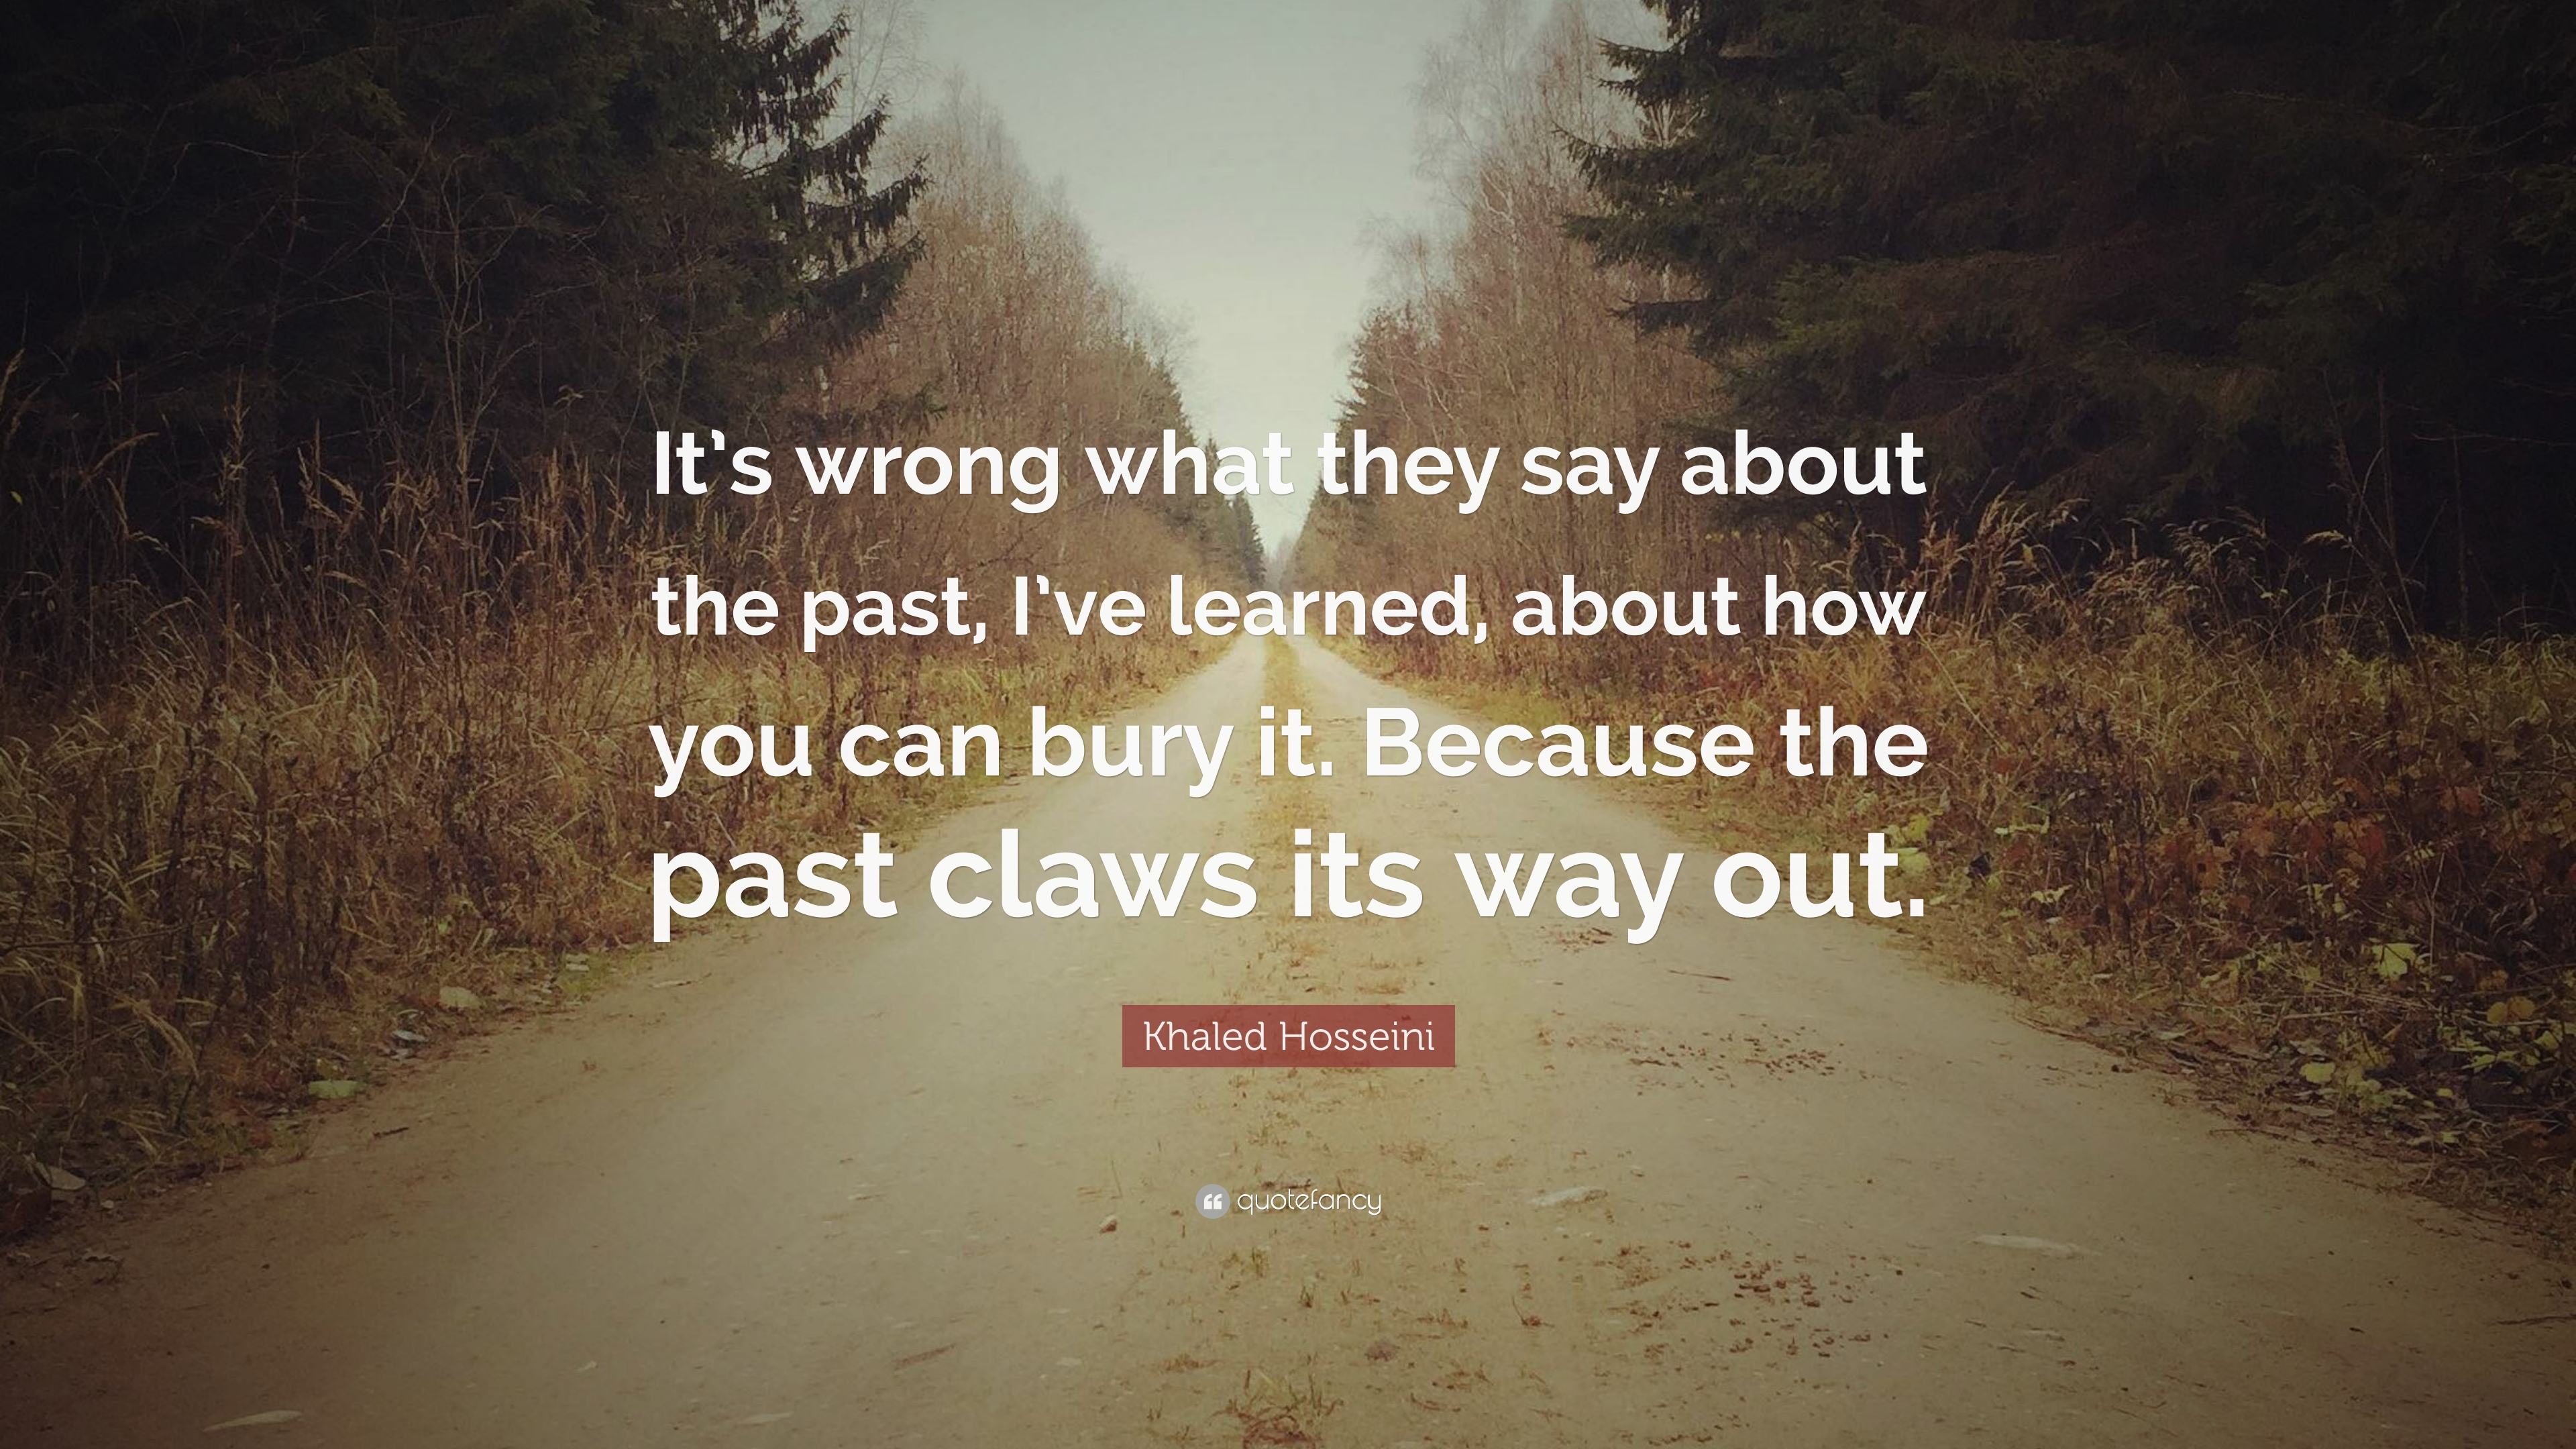 Image result for Its working what they say about the past ,I've learnt about how can you bury it because the past claws its way out.